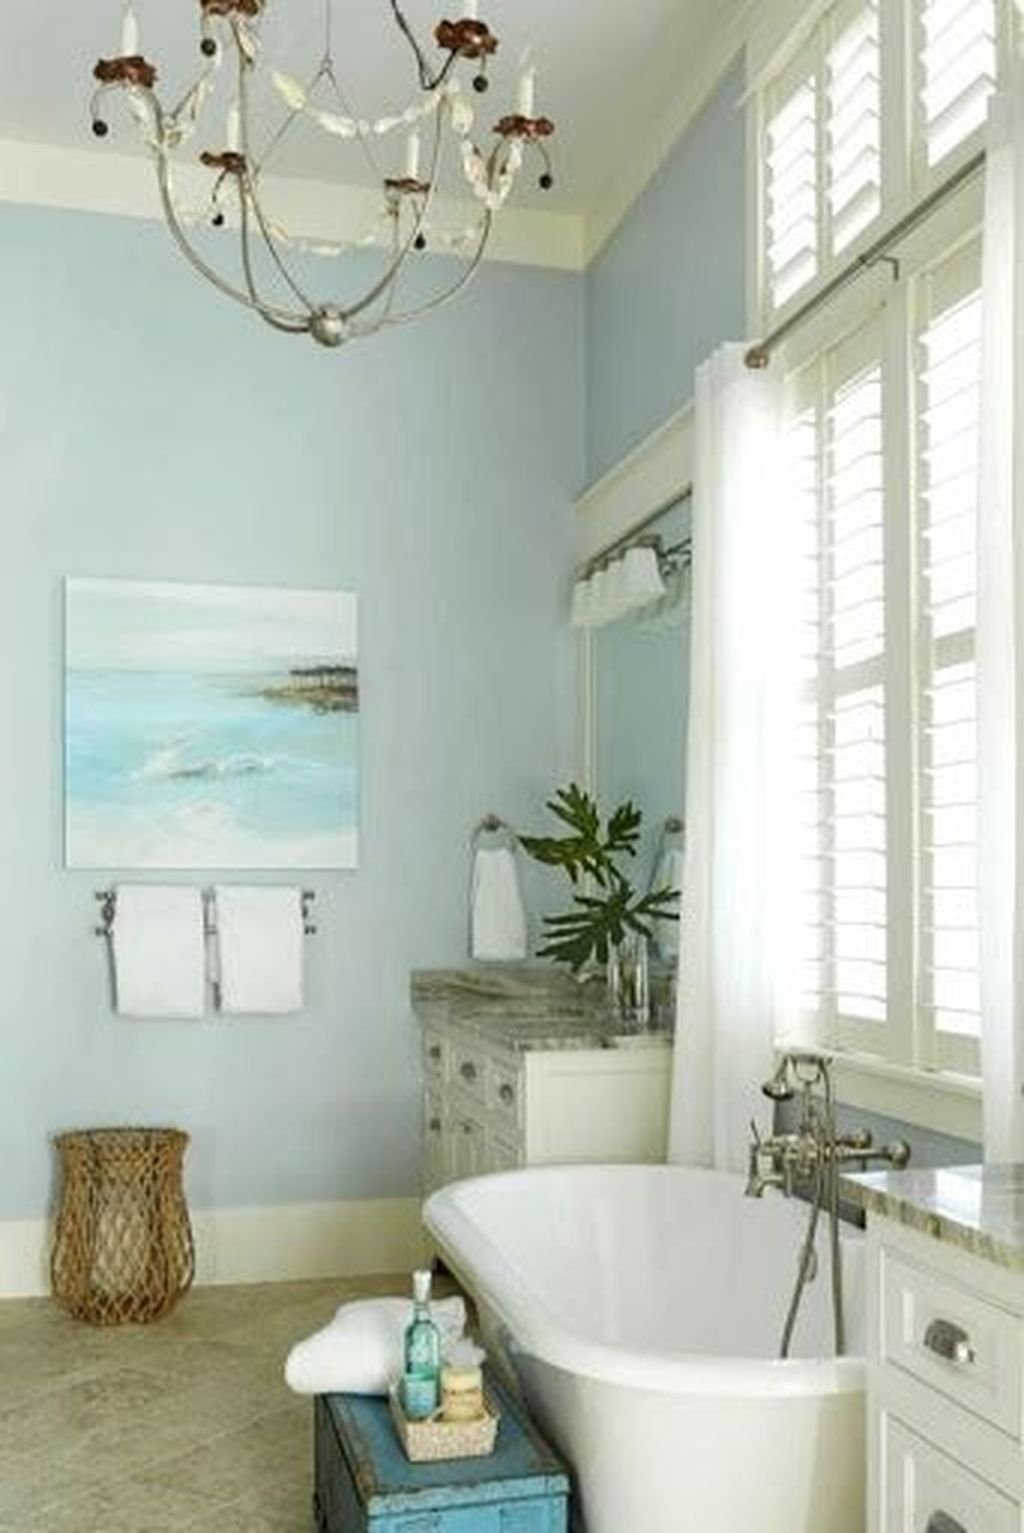 Fabulous Bathroom Decor Ideas With Coastal Style 06